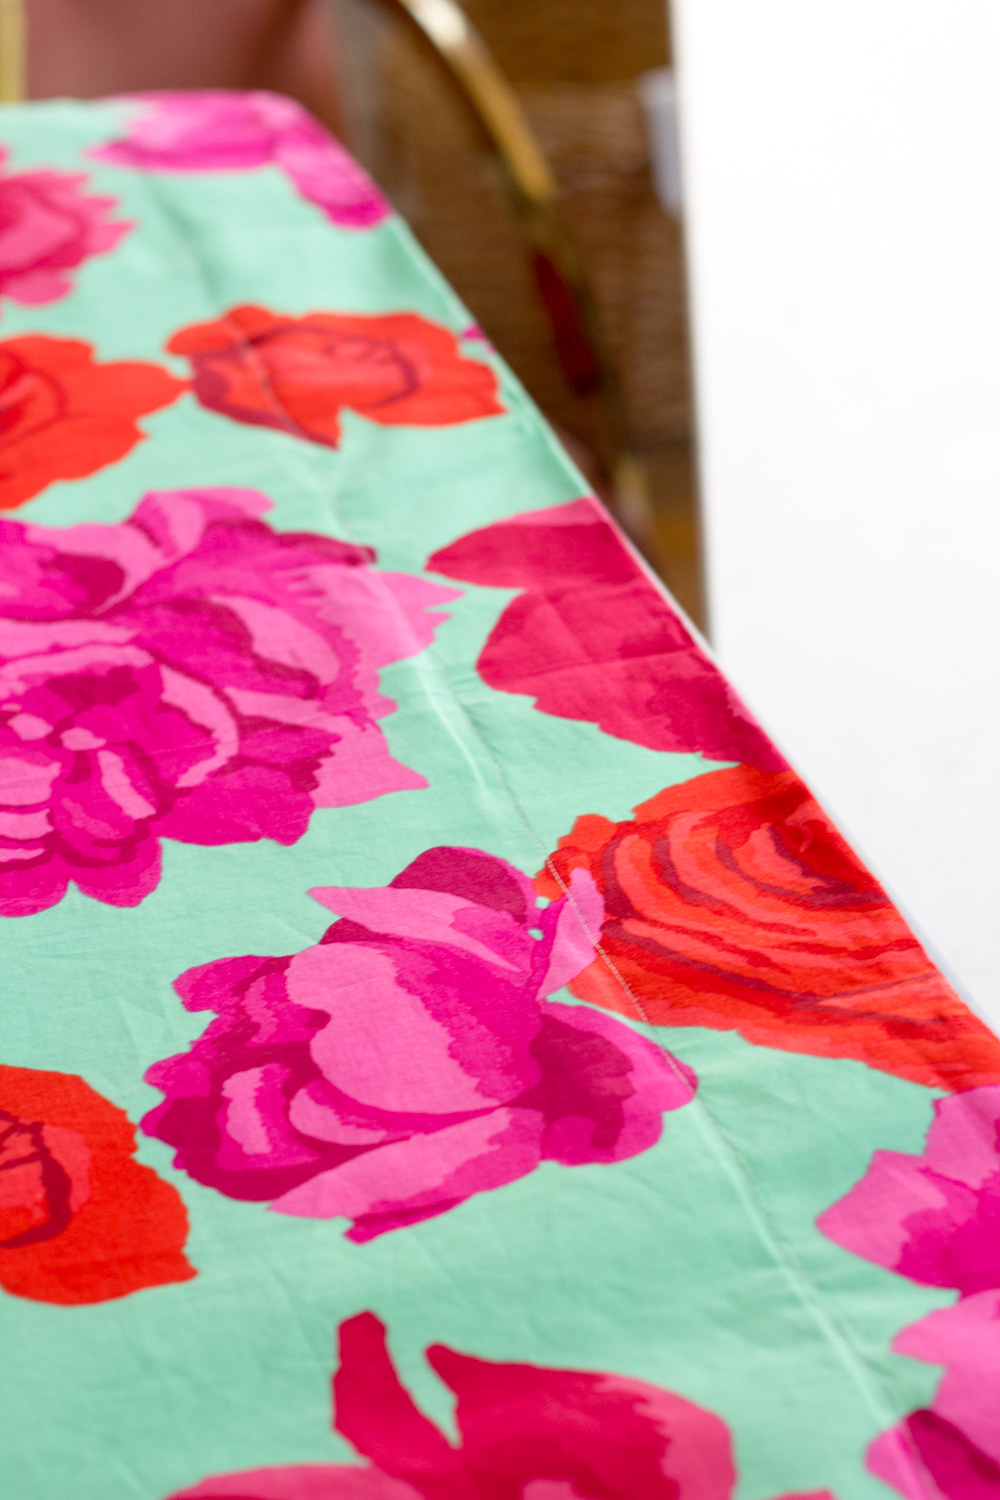 Roses nursery curtain DIY